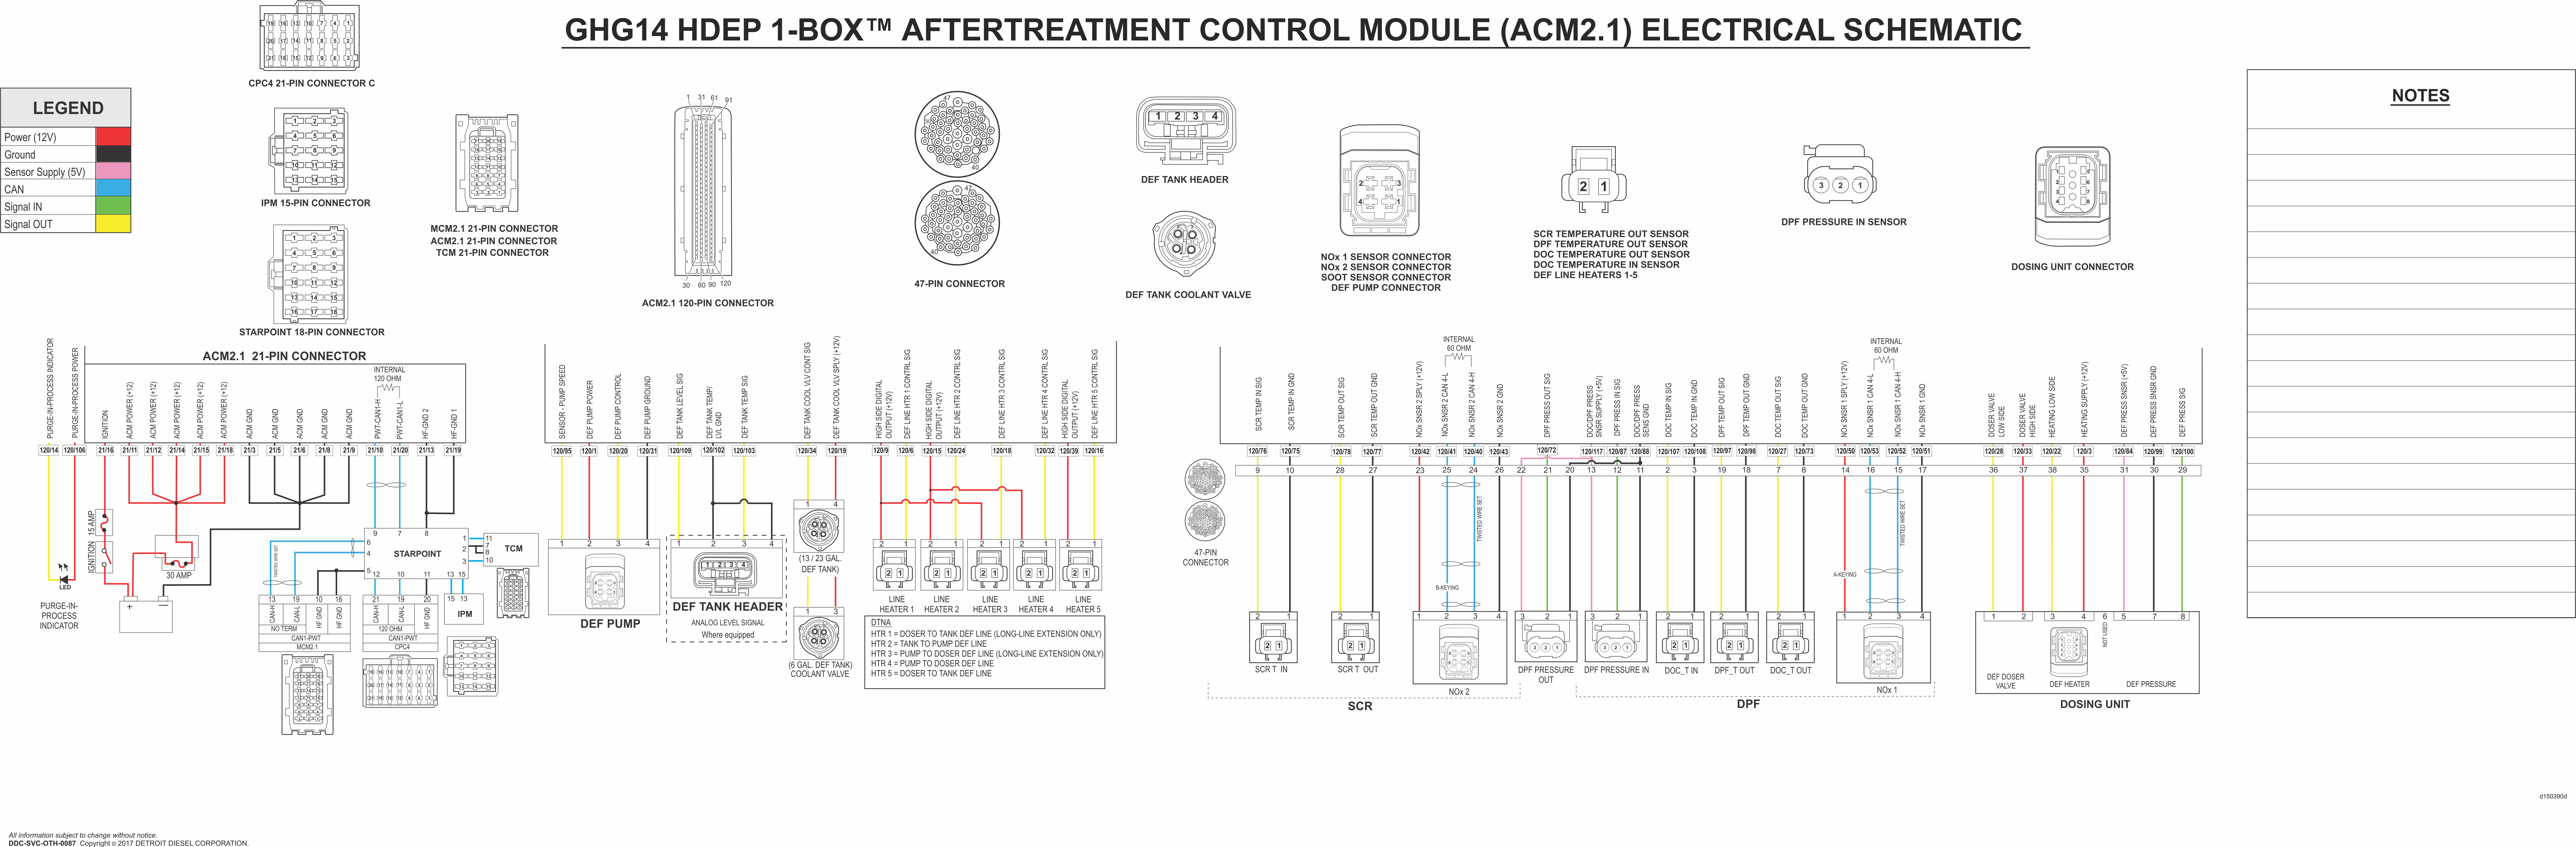 Acm Wiring Diagram - Wiring Diagram Online on assembly diagram, telecommunications diagram, solar panels diagram, instrumentation diagram, drilling diagram, panel wiring icon, grounding diagram, electricians diagram, troubleshooting diagram, rslogix diagram, installation diagram, plc diagram,